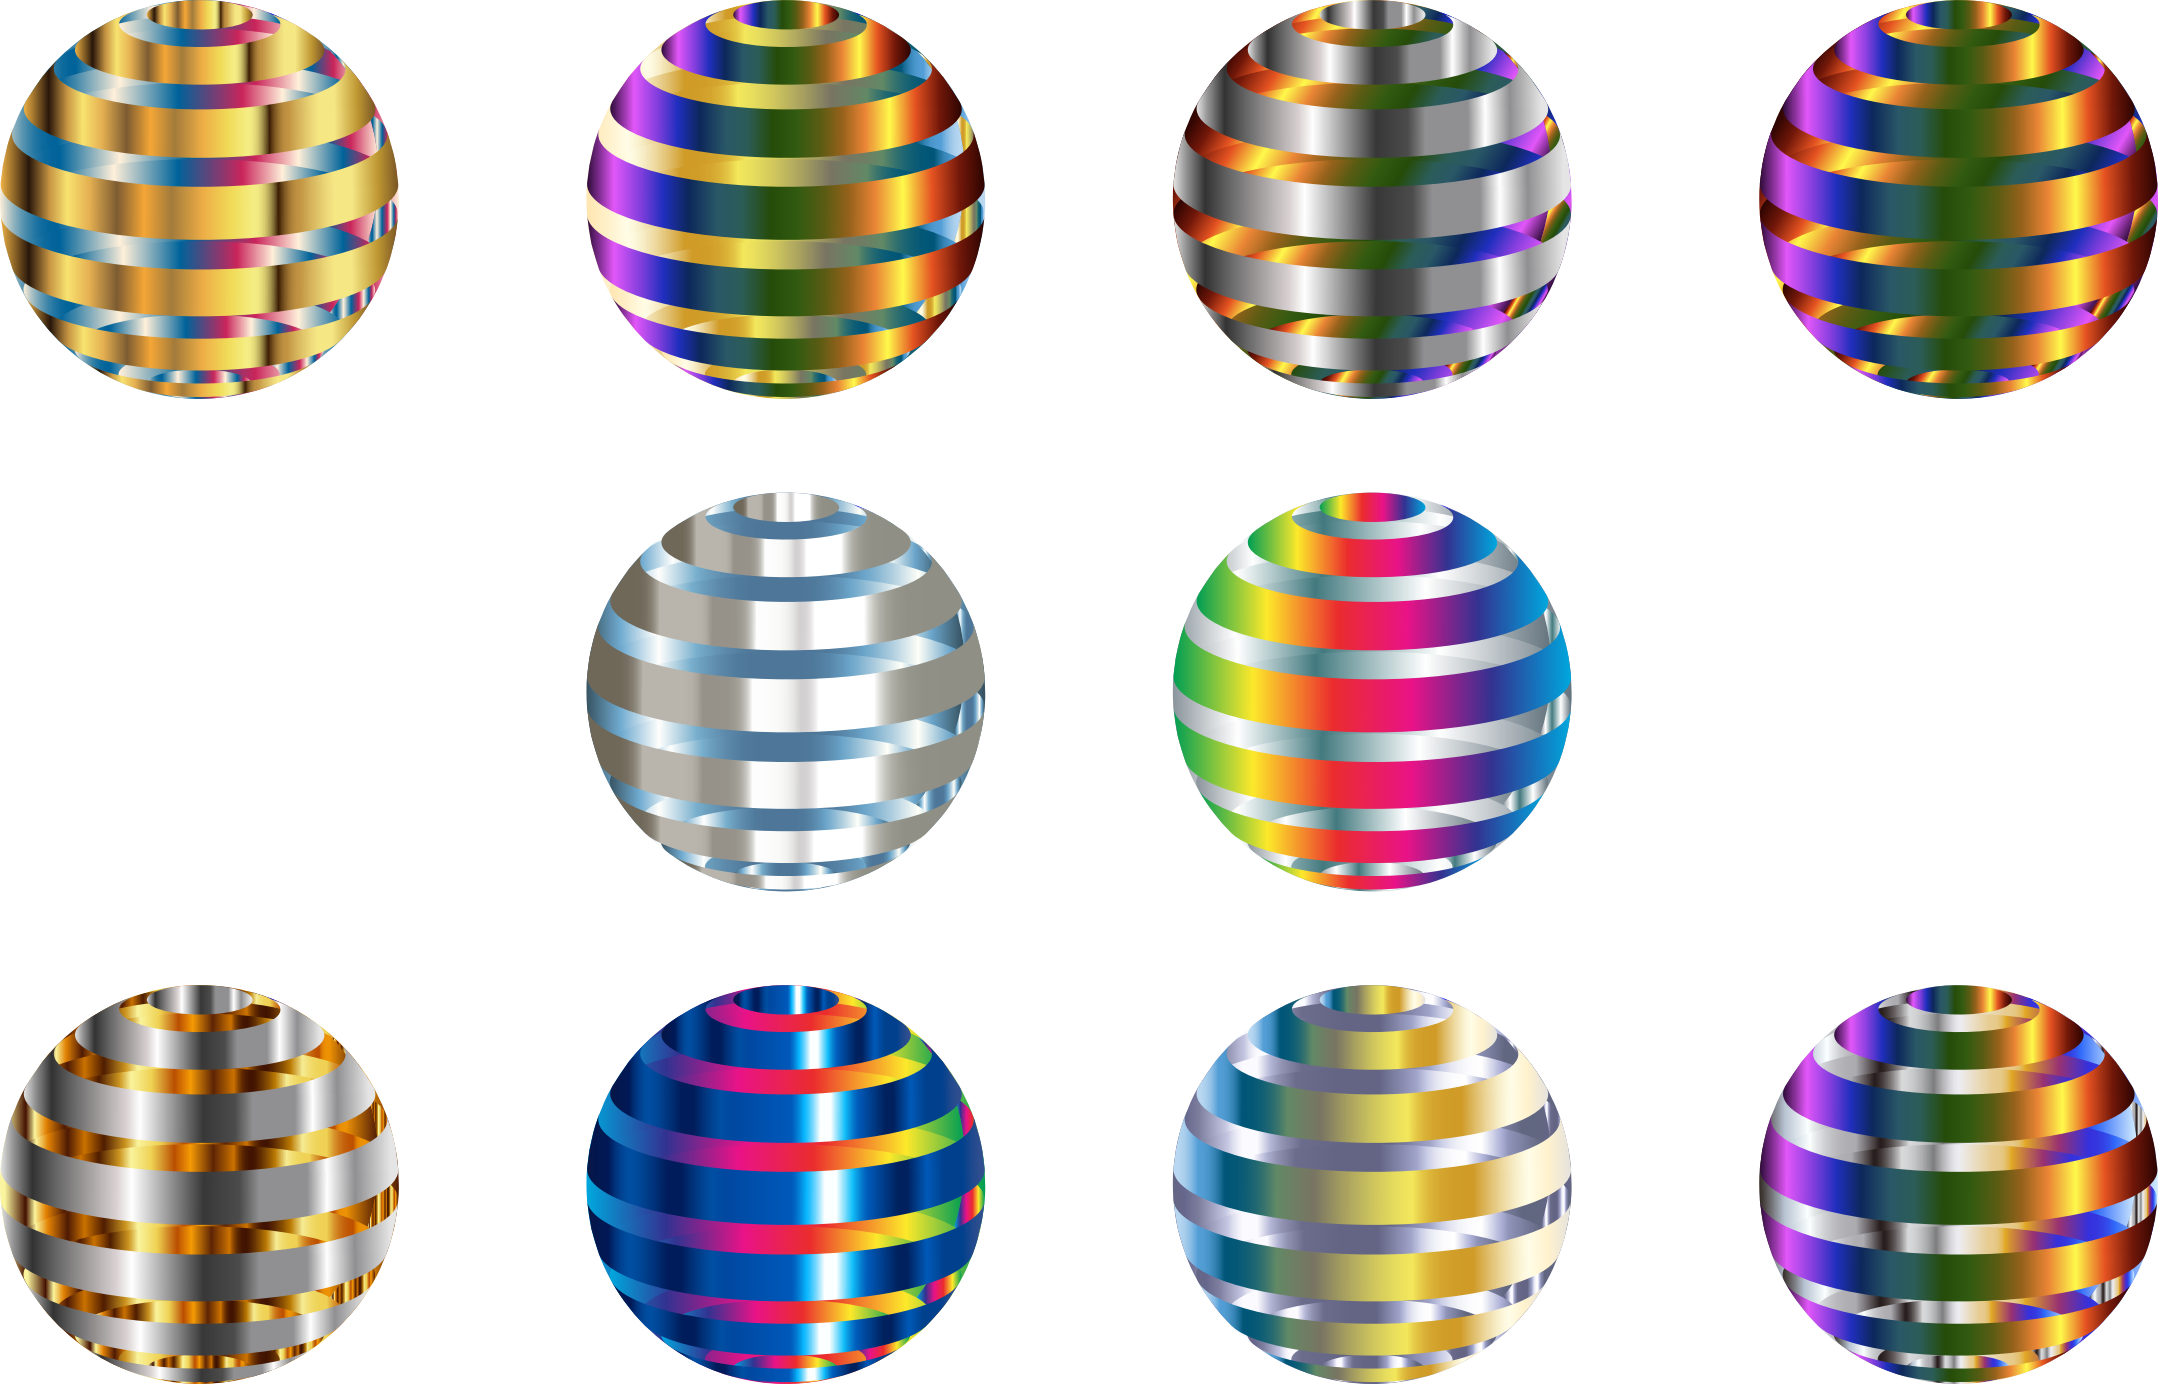 Set Of 10 Shiny Metallic 3D Spheres by GDJ